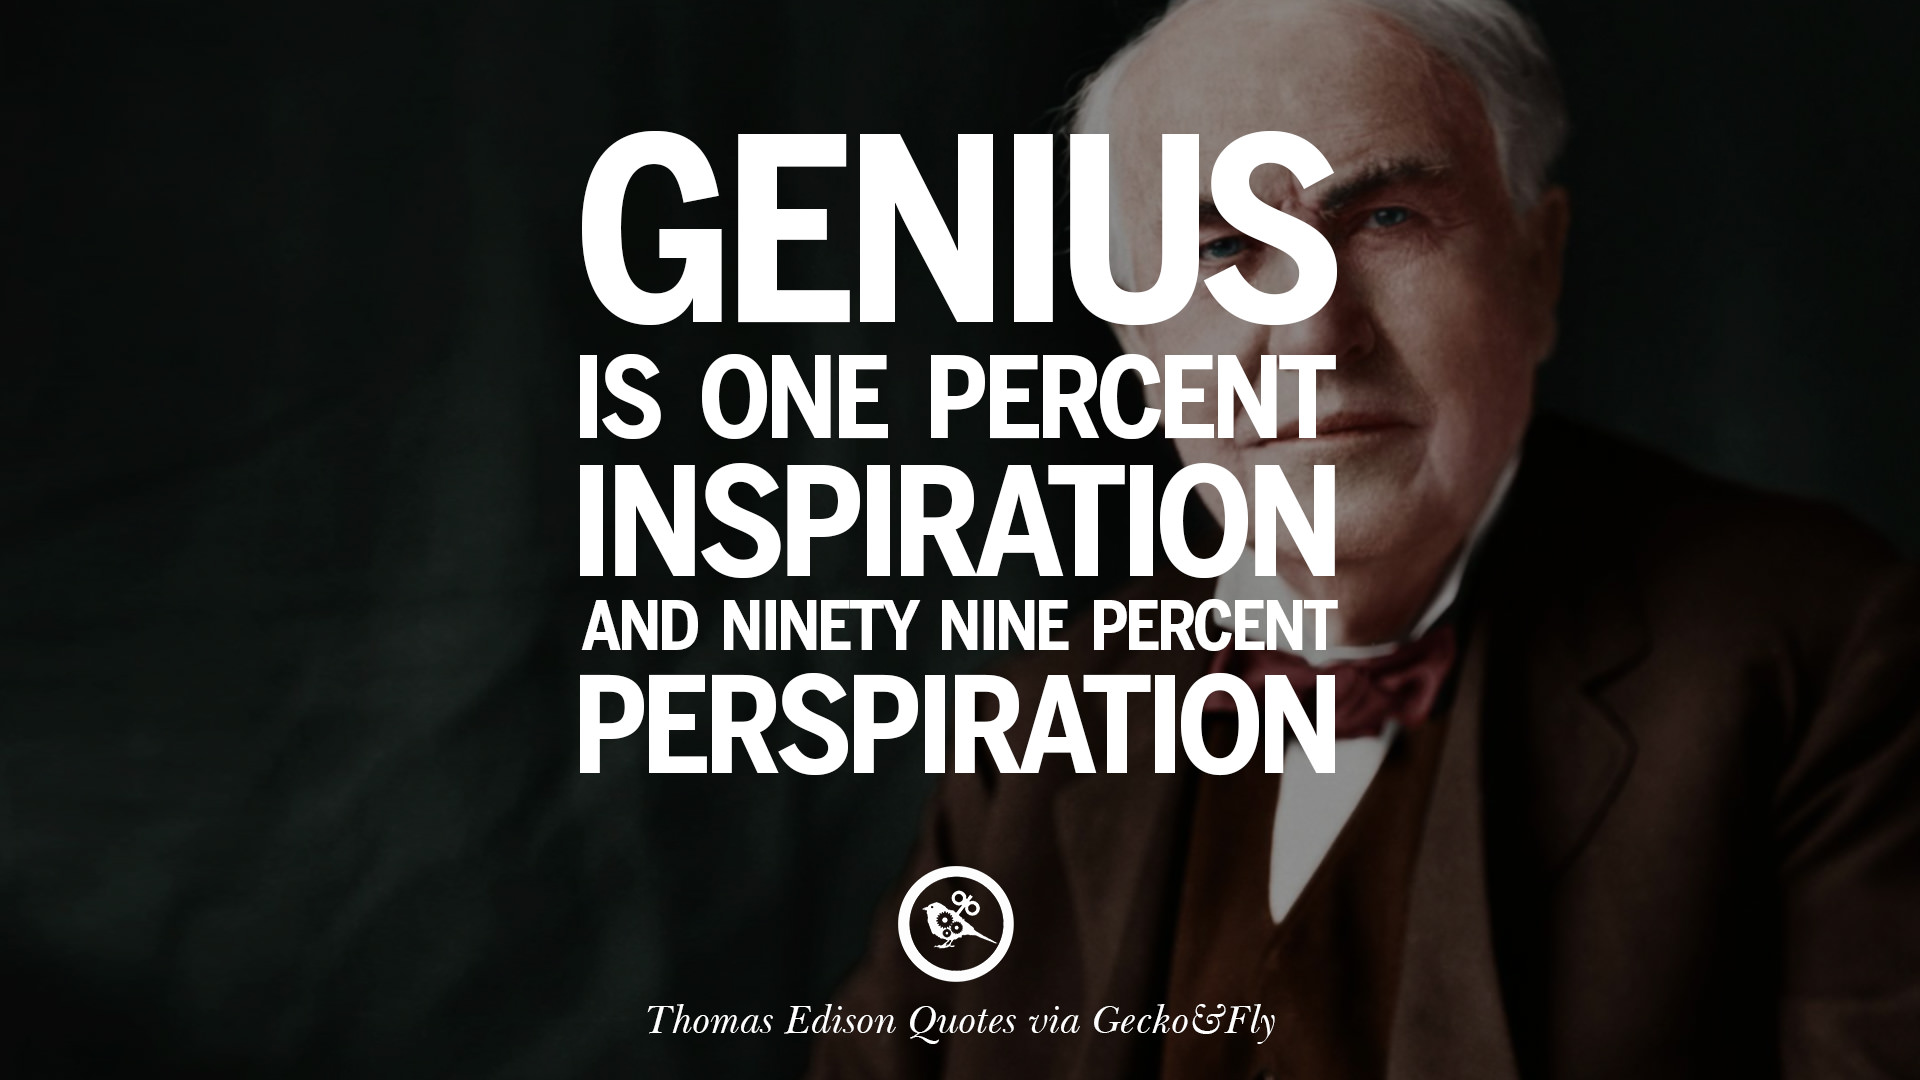 genius is one percent inspiration and 99 percent perspiration essay It is a quote attributed to thomas edison: genius is one percent inspiration and ninety-nine percent perspiration in any activity, whether it is mental or physical or some combination, different people have different levels of ability and they also put in different amounts of effort.